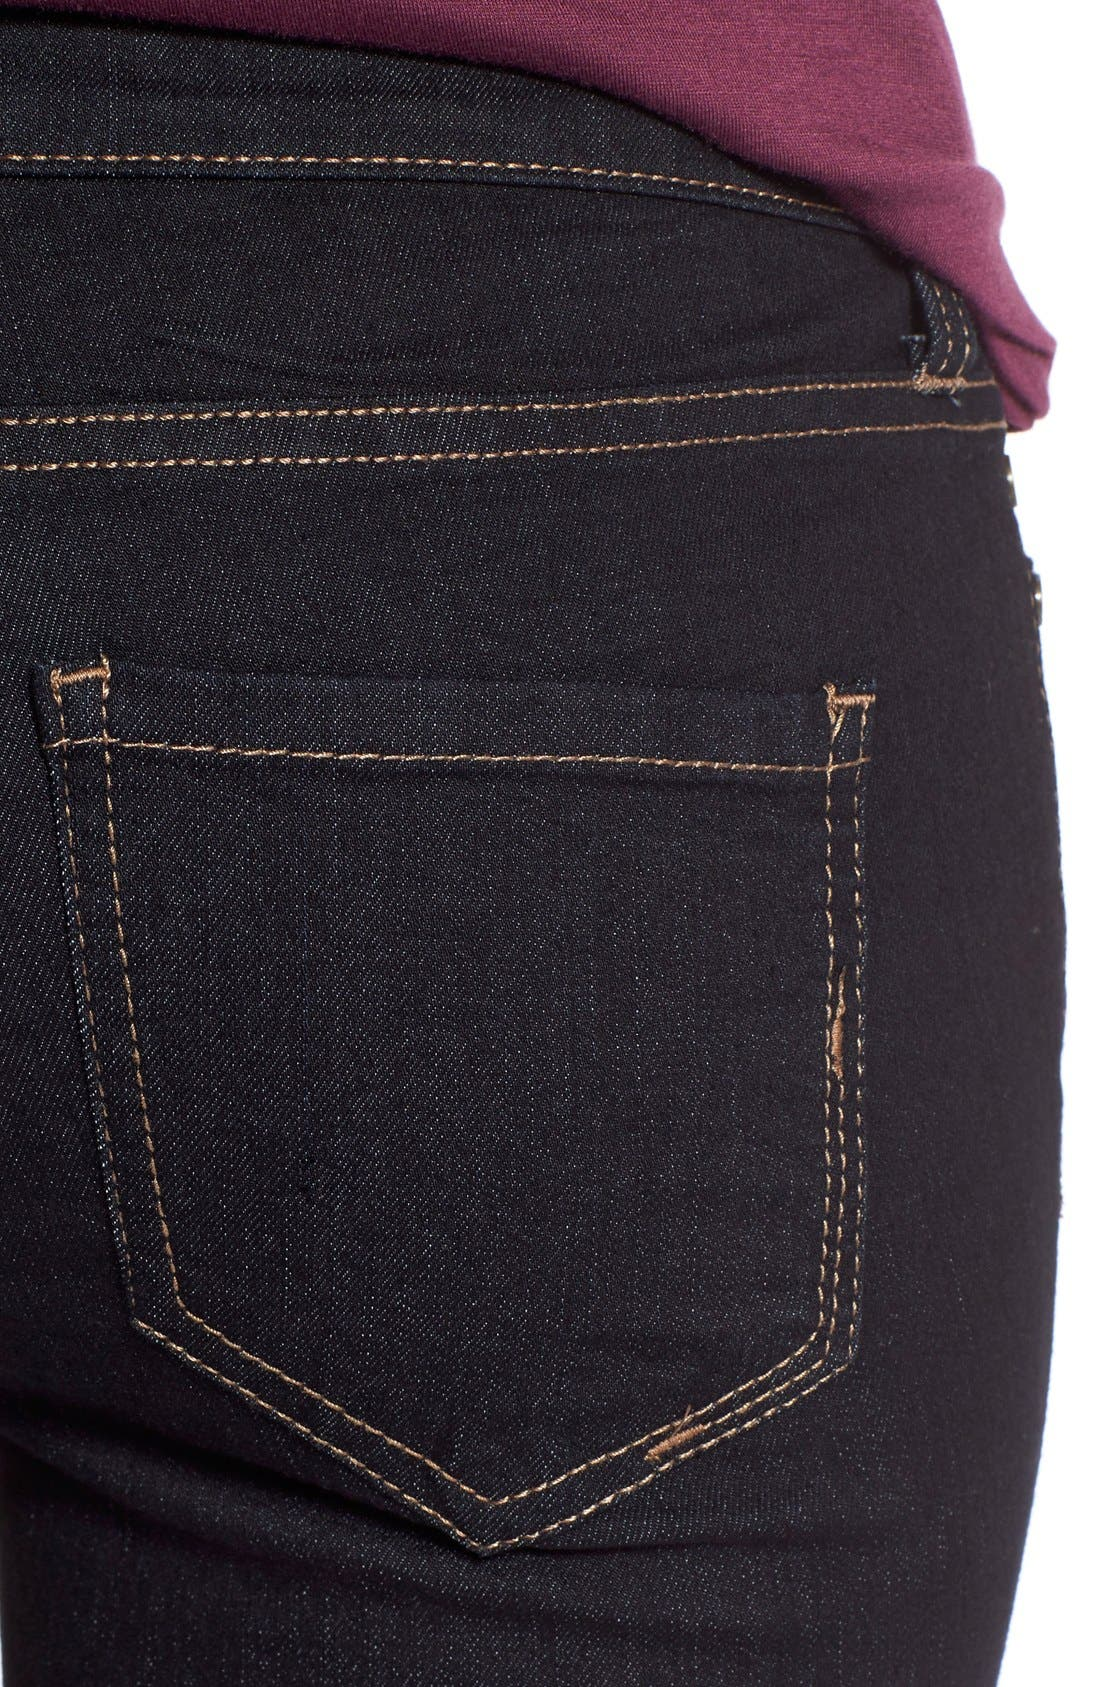 Lucy Stretch BootcutJeans,                             Alternate thumbnail 3, color,